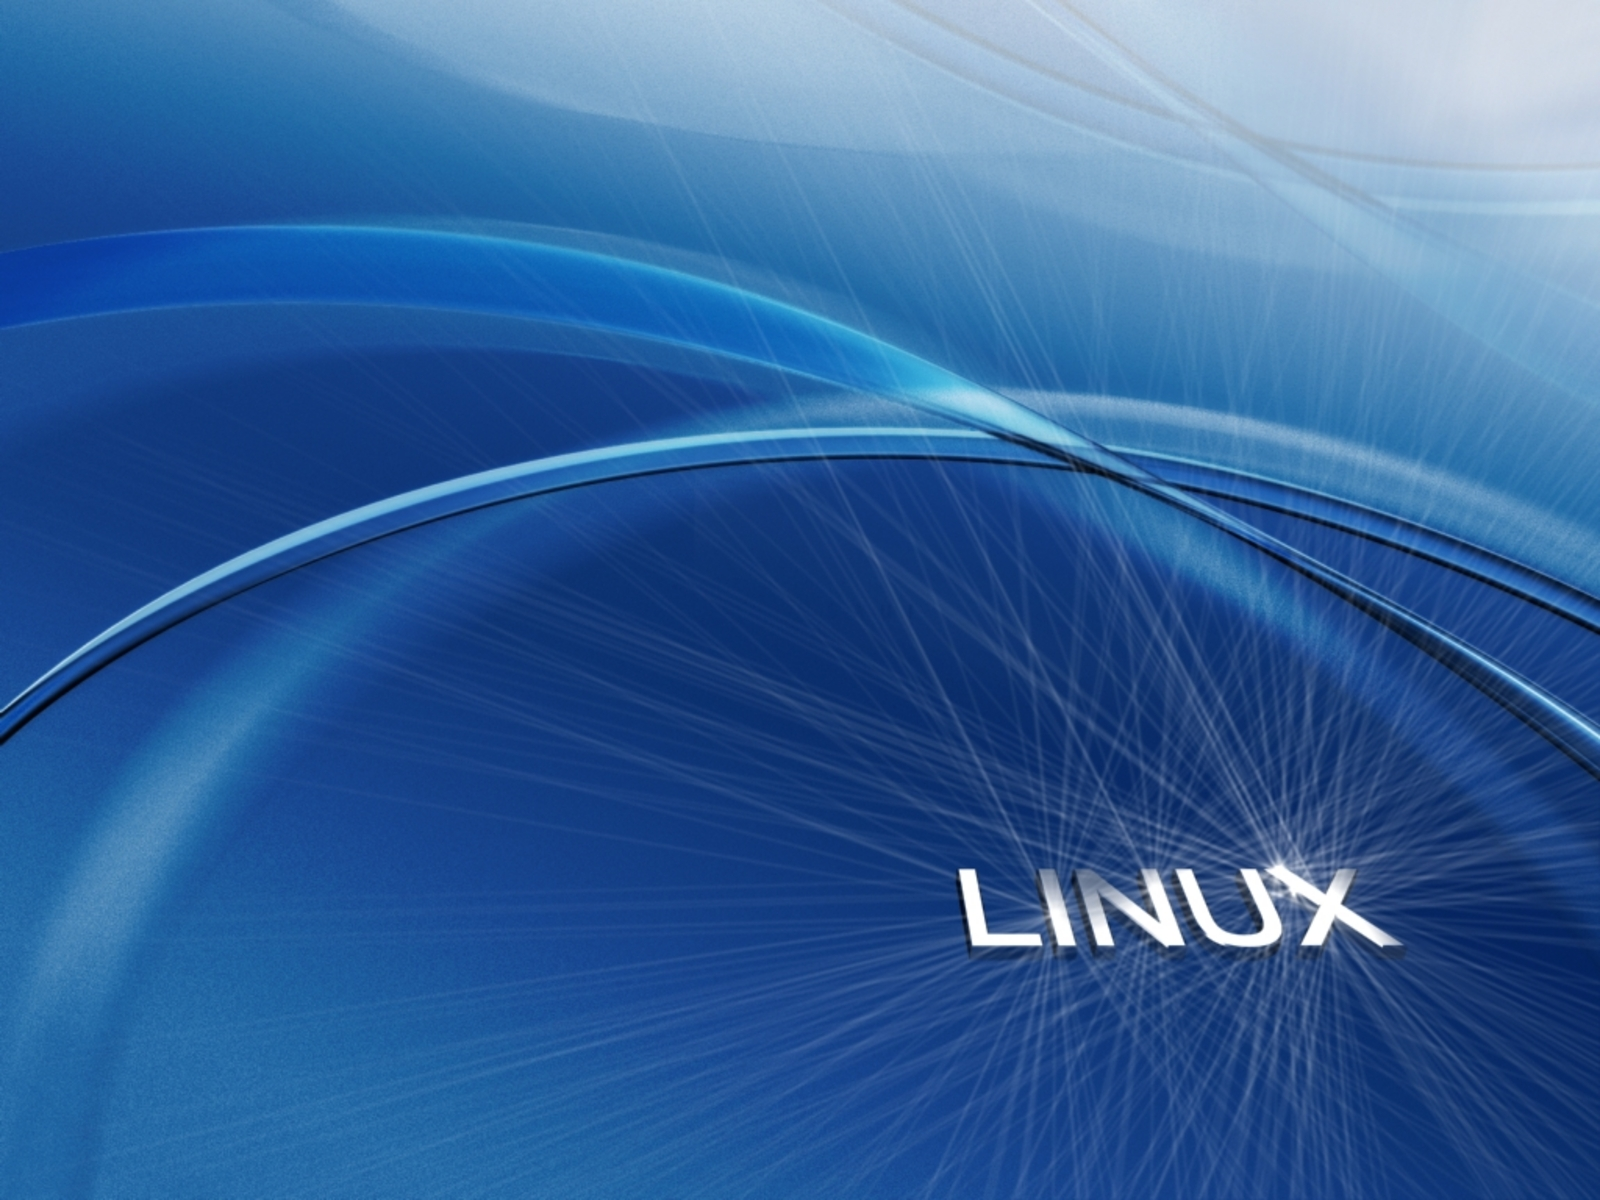 Linux Evalution Wallpapers HD Wallpapers 1600x1200